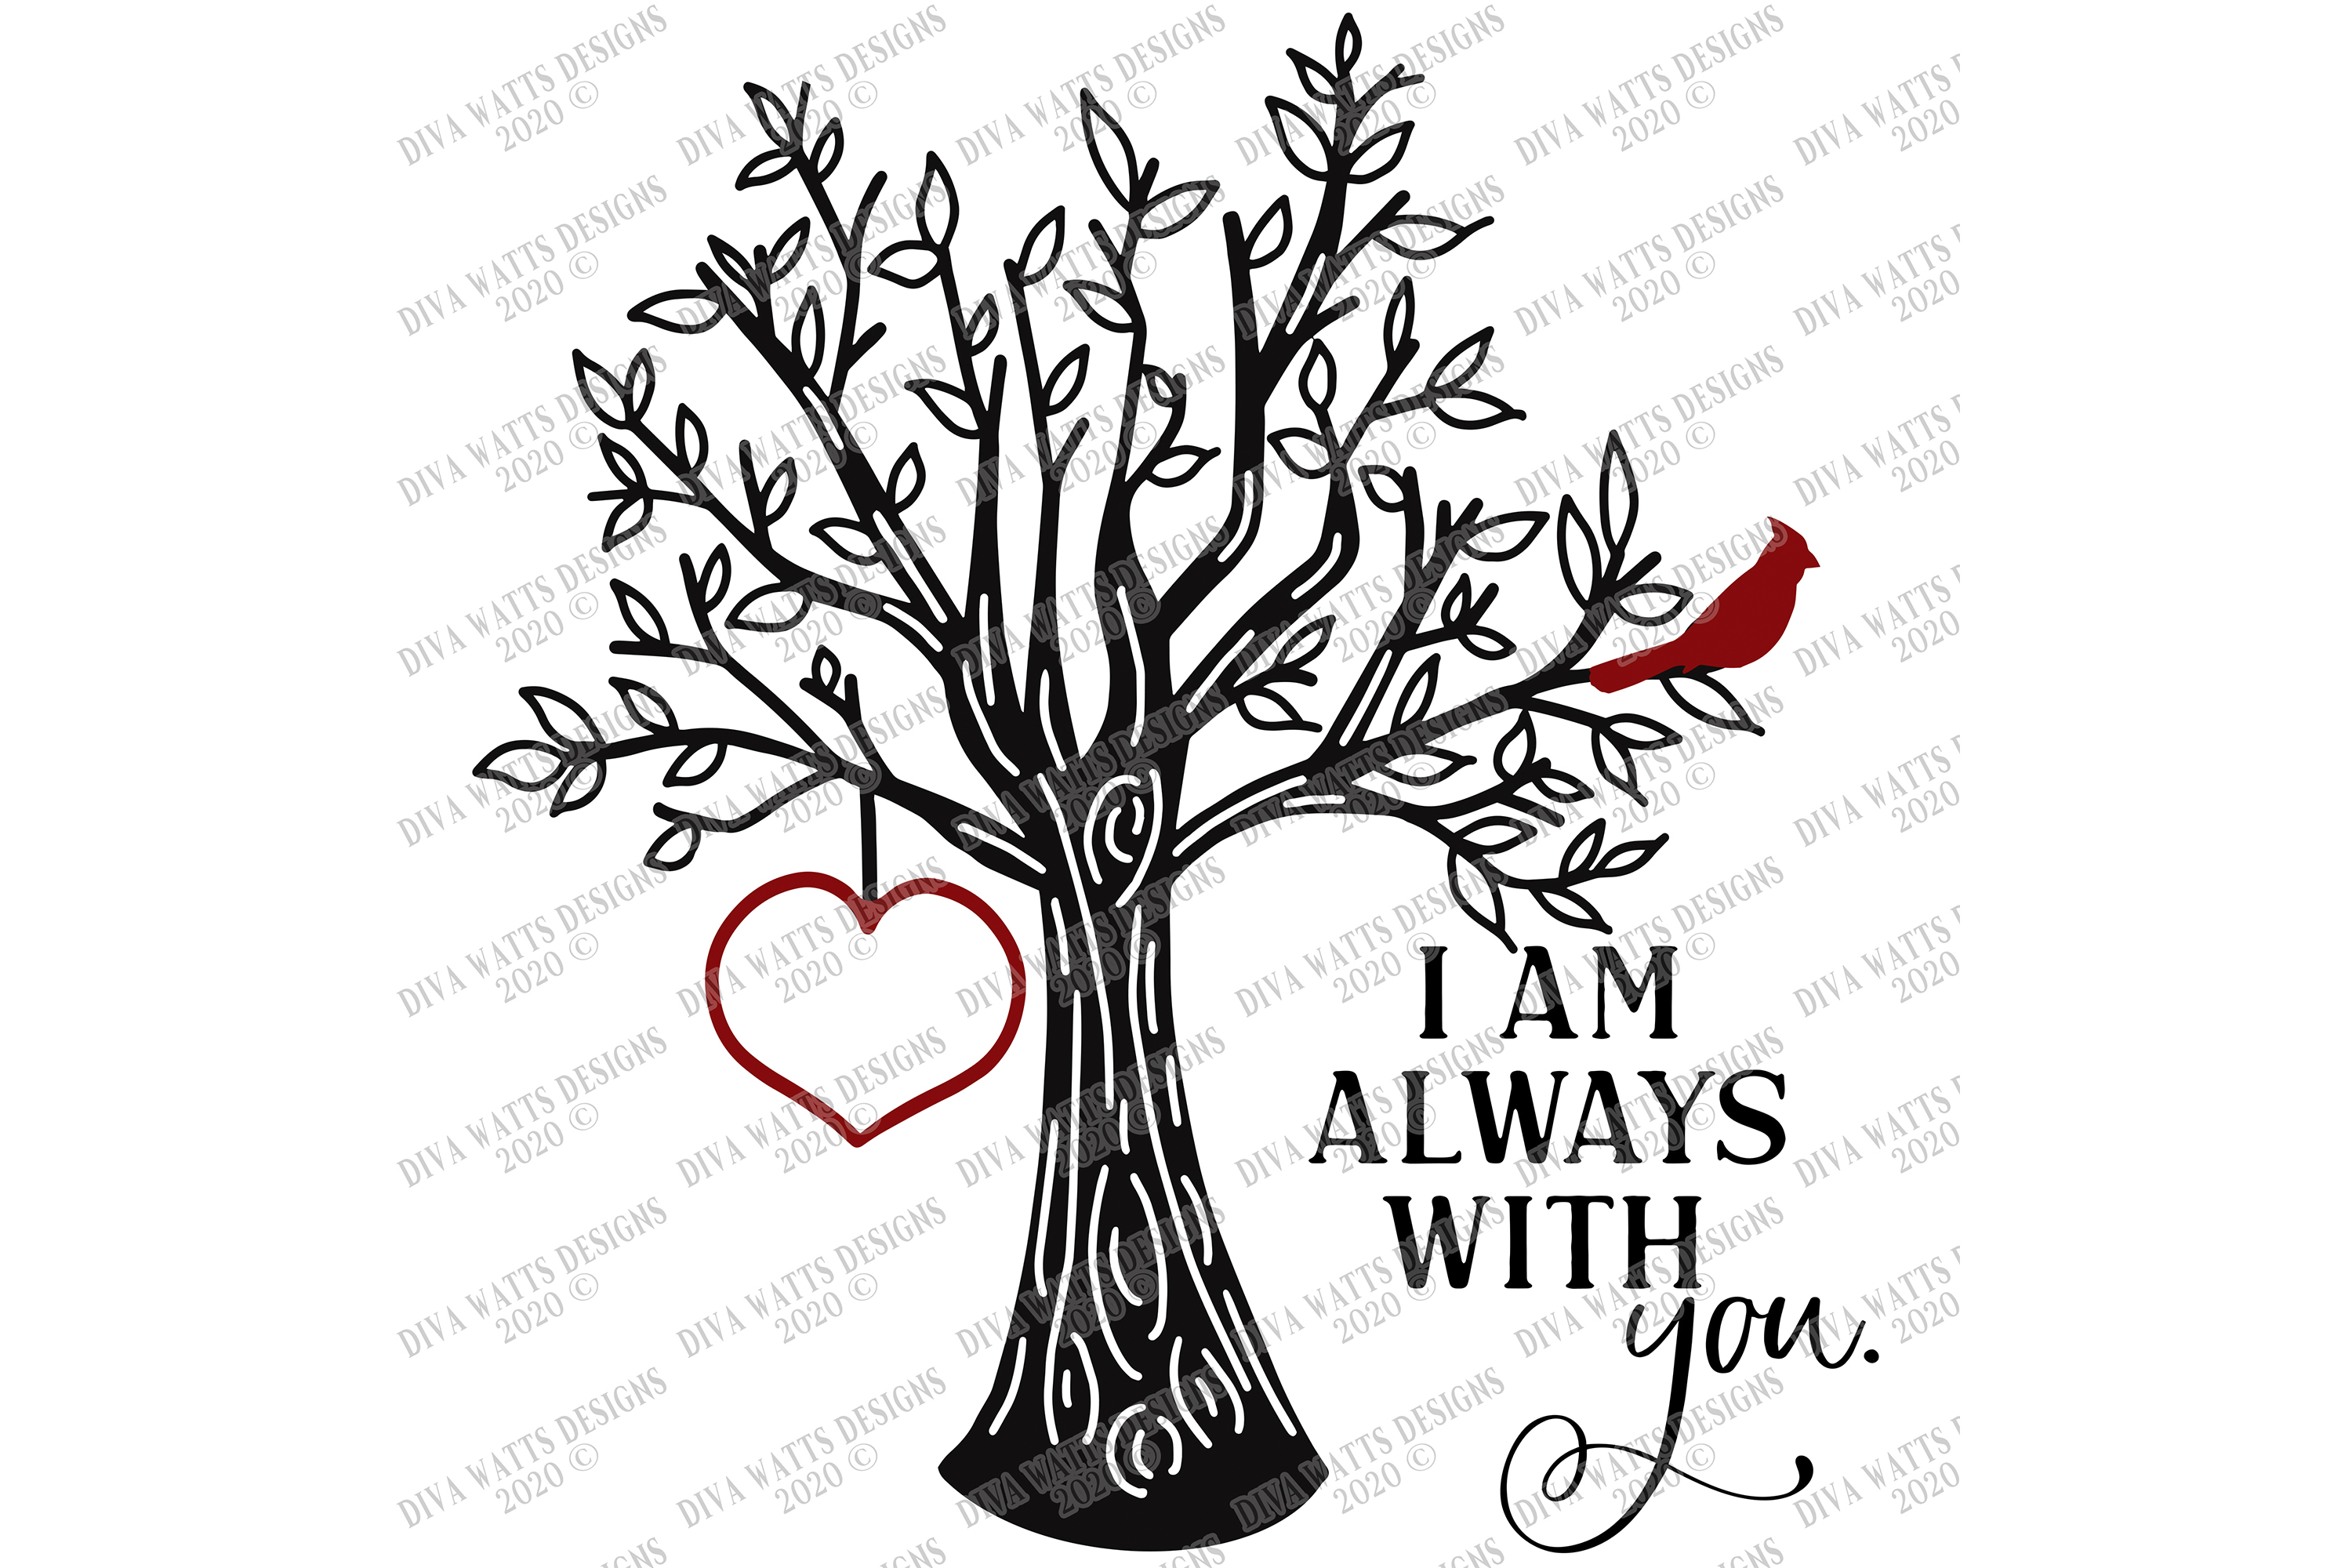 I Am Always With You - Red Cardinal Tree Heart - Customize example image 3